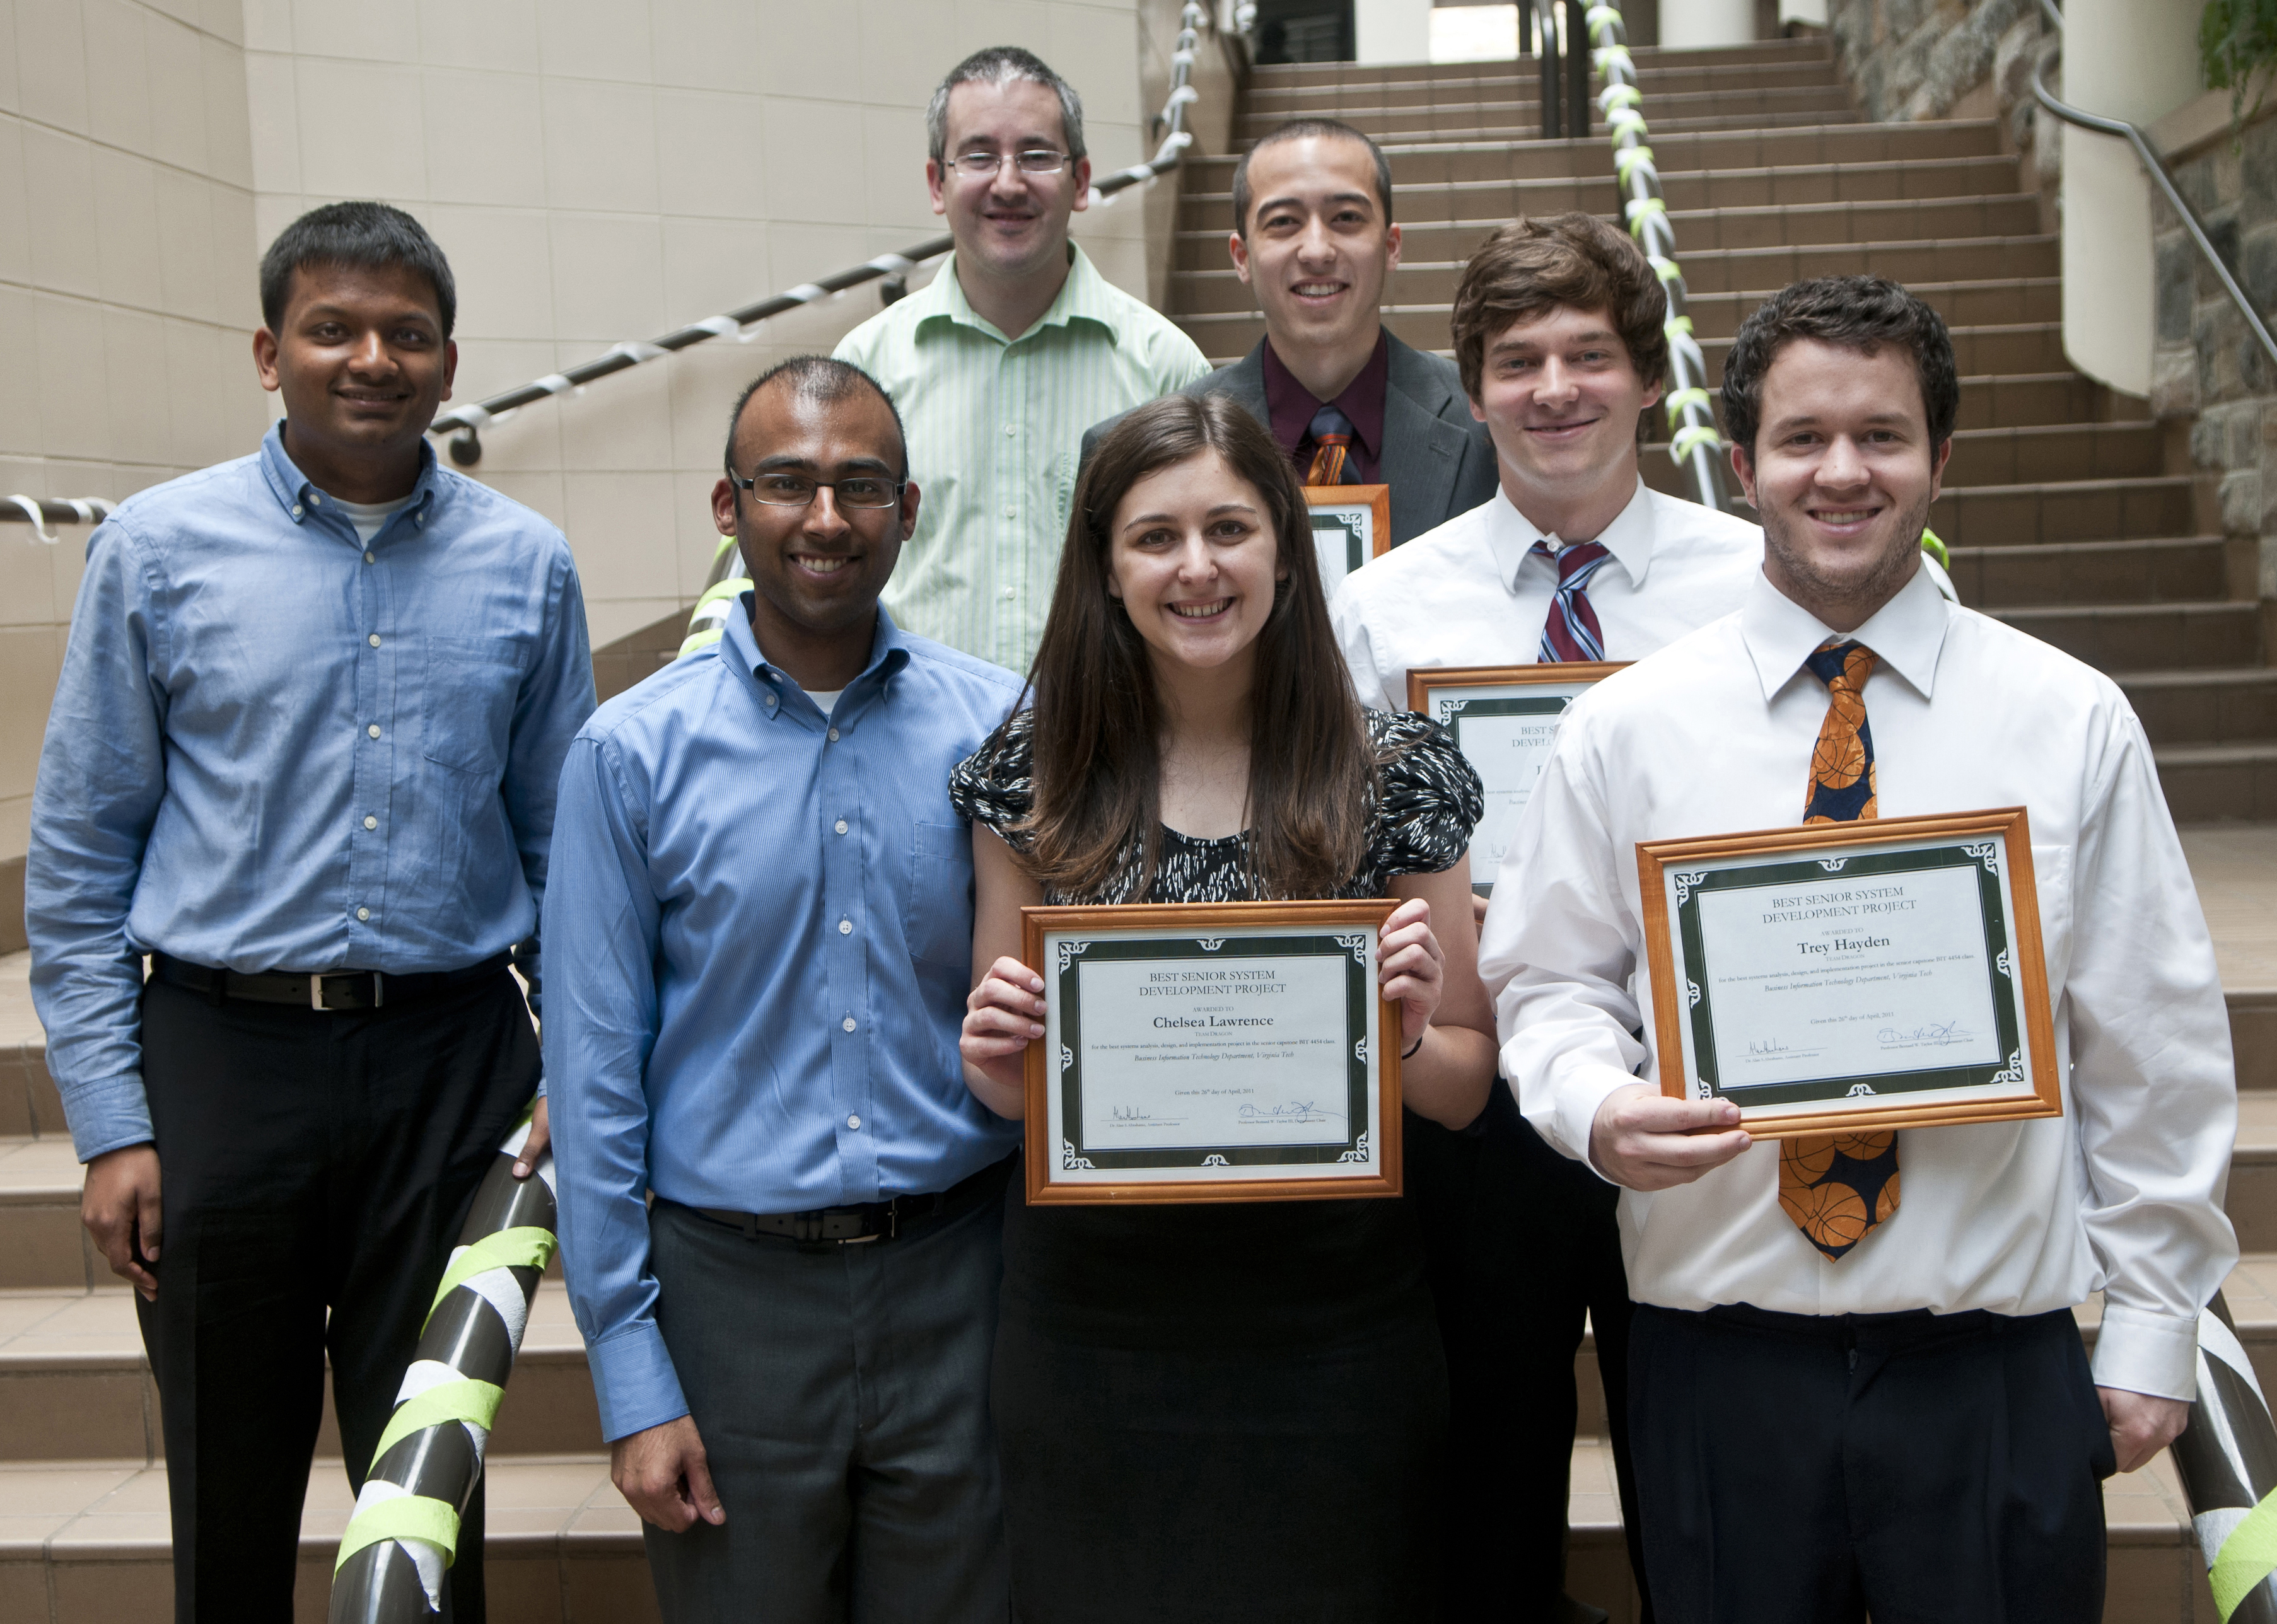 from left to right: David A. George, Vishnu Thygarajan, Alan Abrahams, Chelsea Lawrence, William Hayashi, Damir Uzunic, and Trey Hayden.